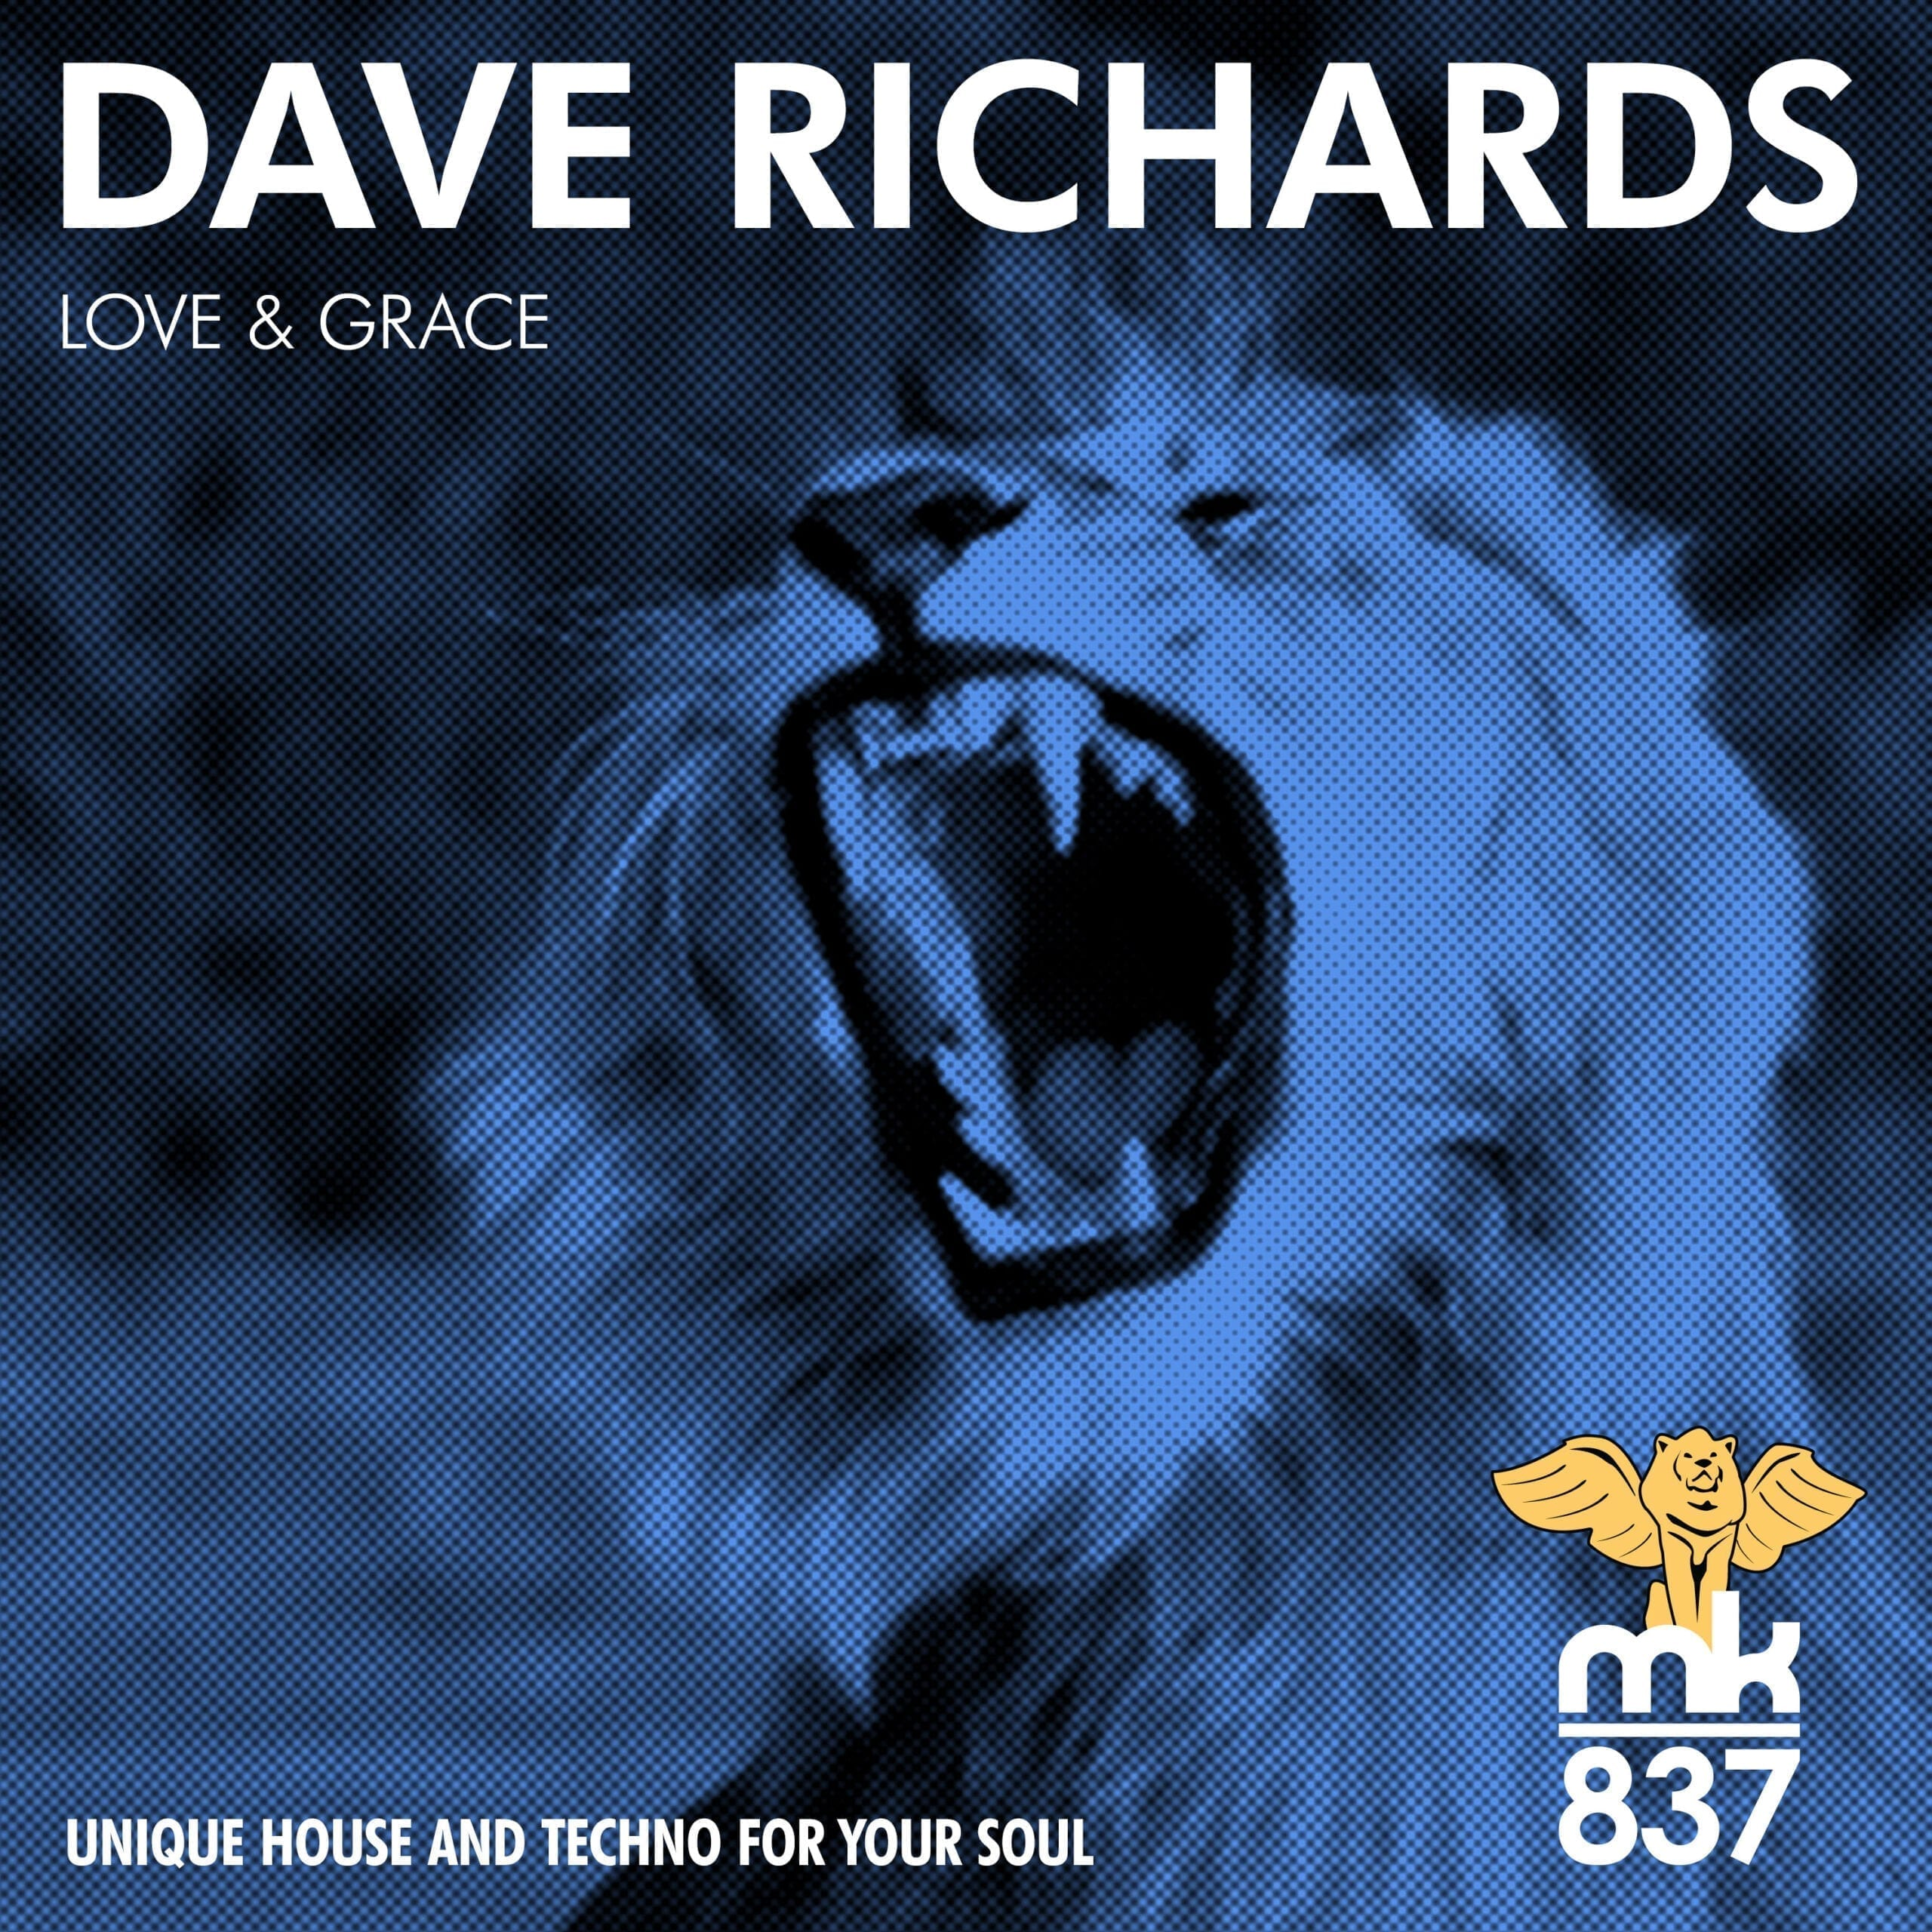 "Dave Richards presents ""Love & Grace"" with remixes by J Lauda, Samuel Zamora & Yered Ponce"